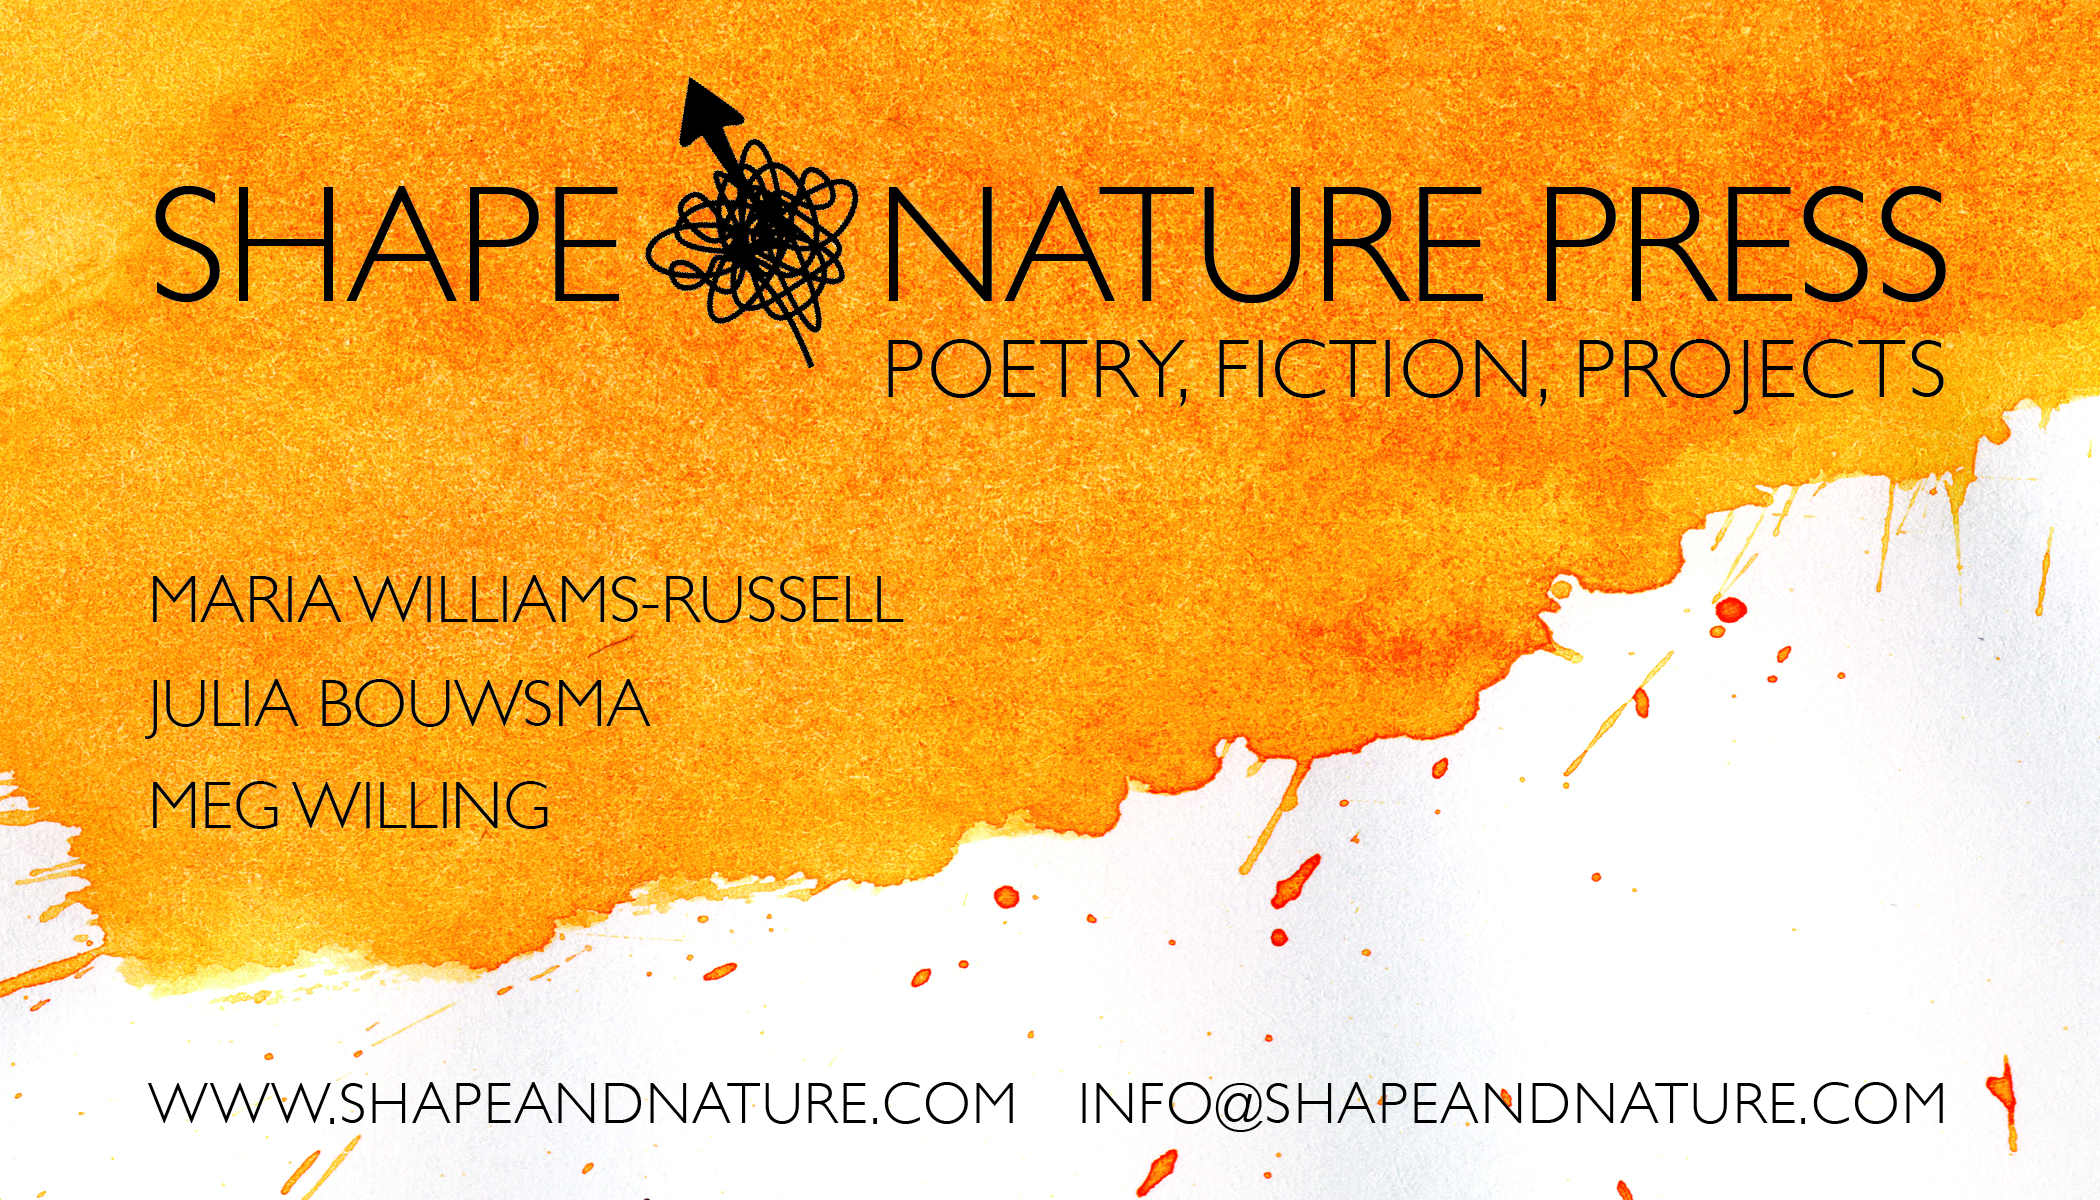 Shape&Nature Press business card.